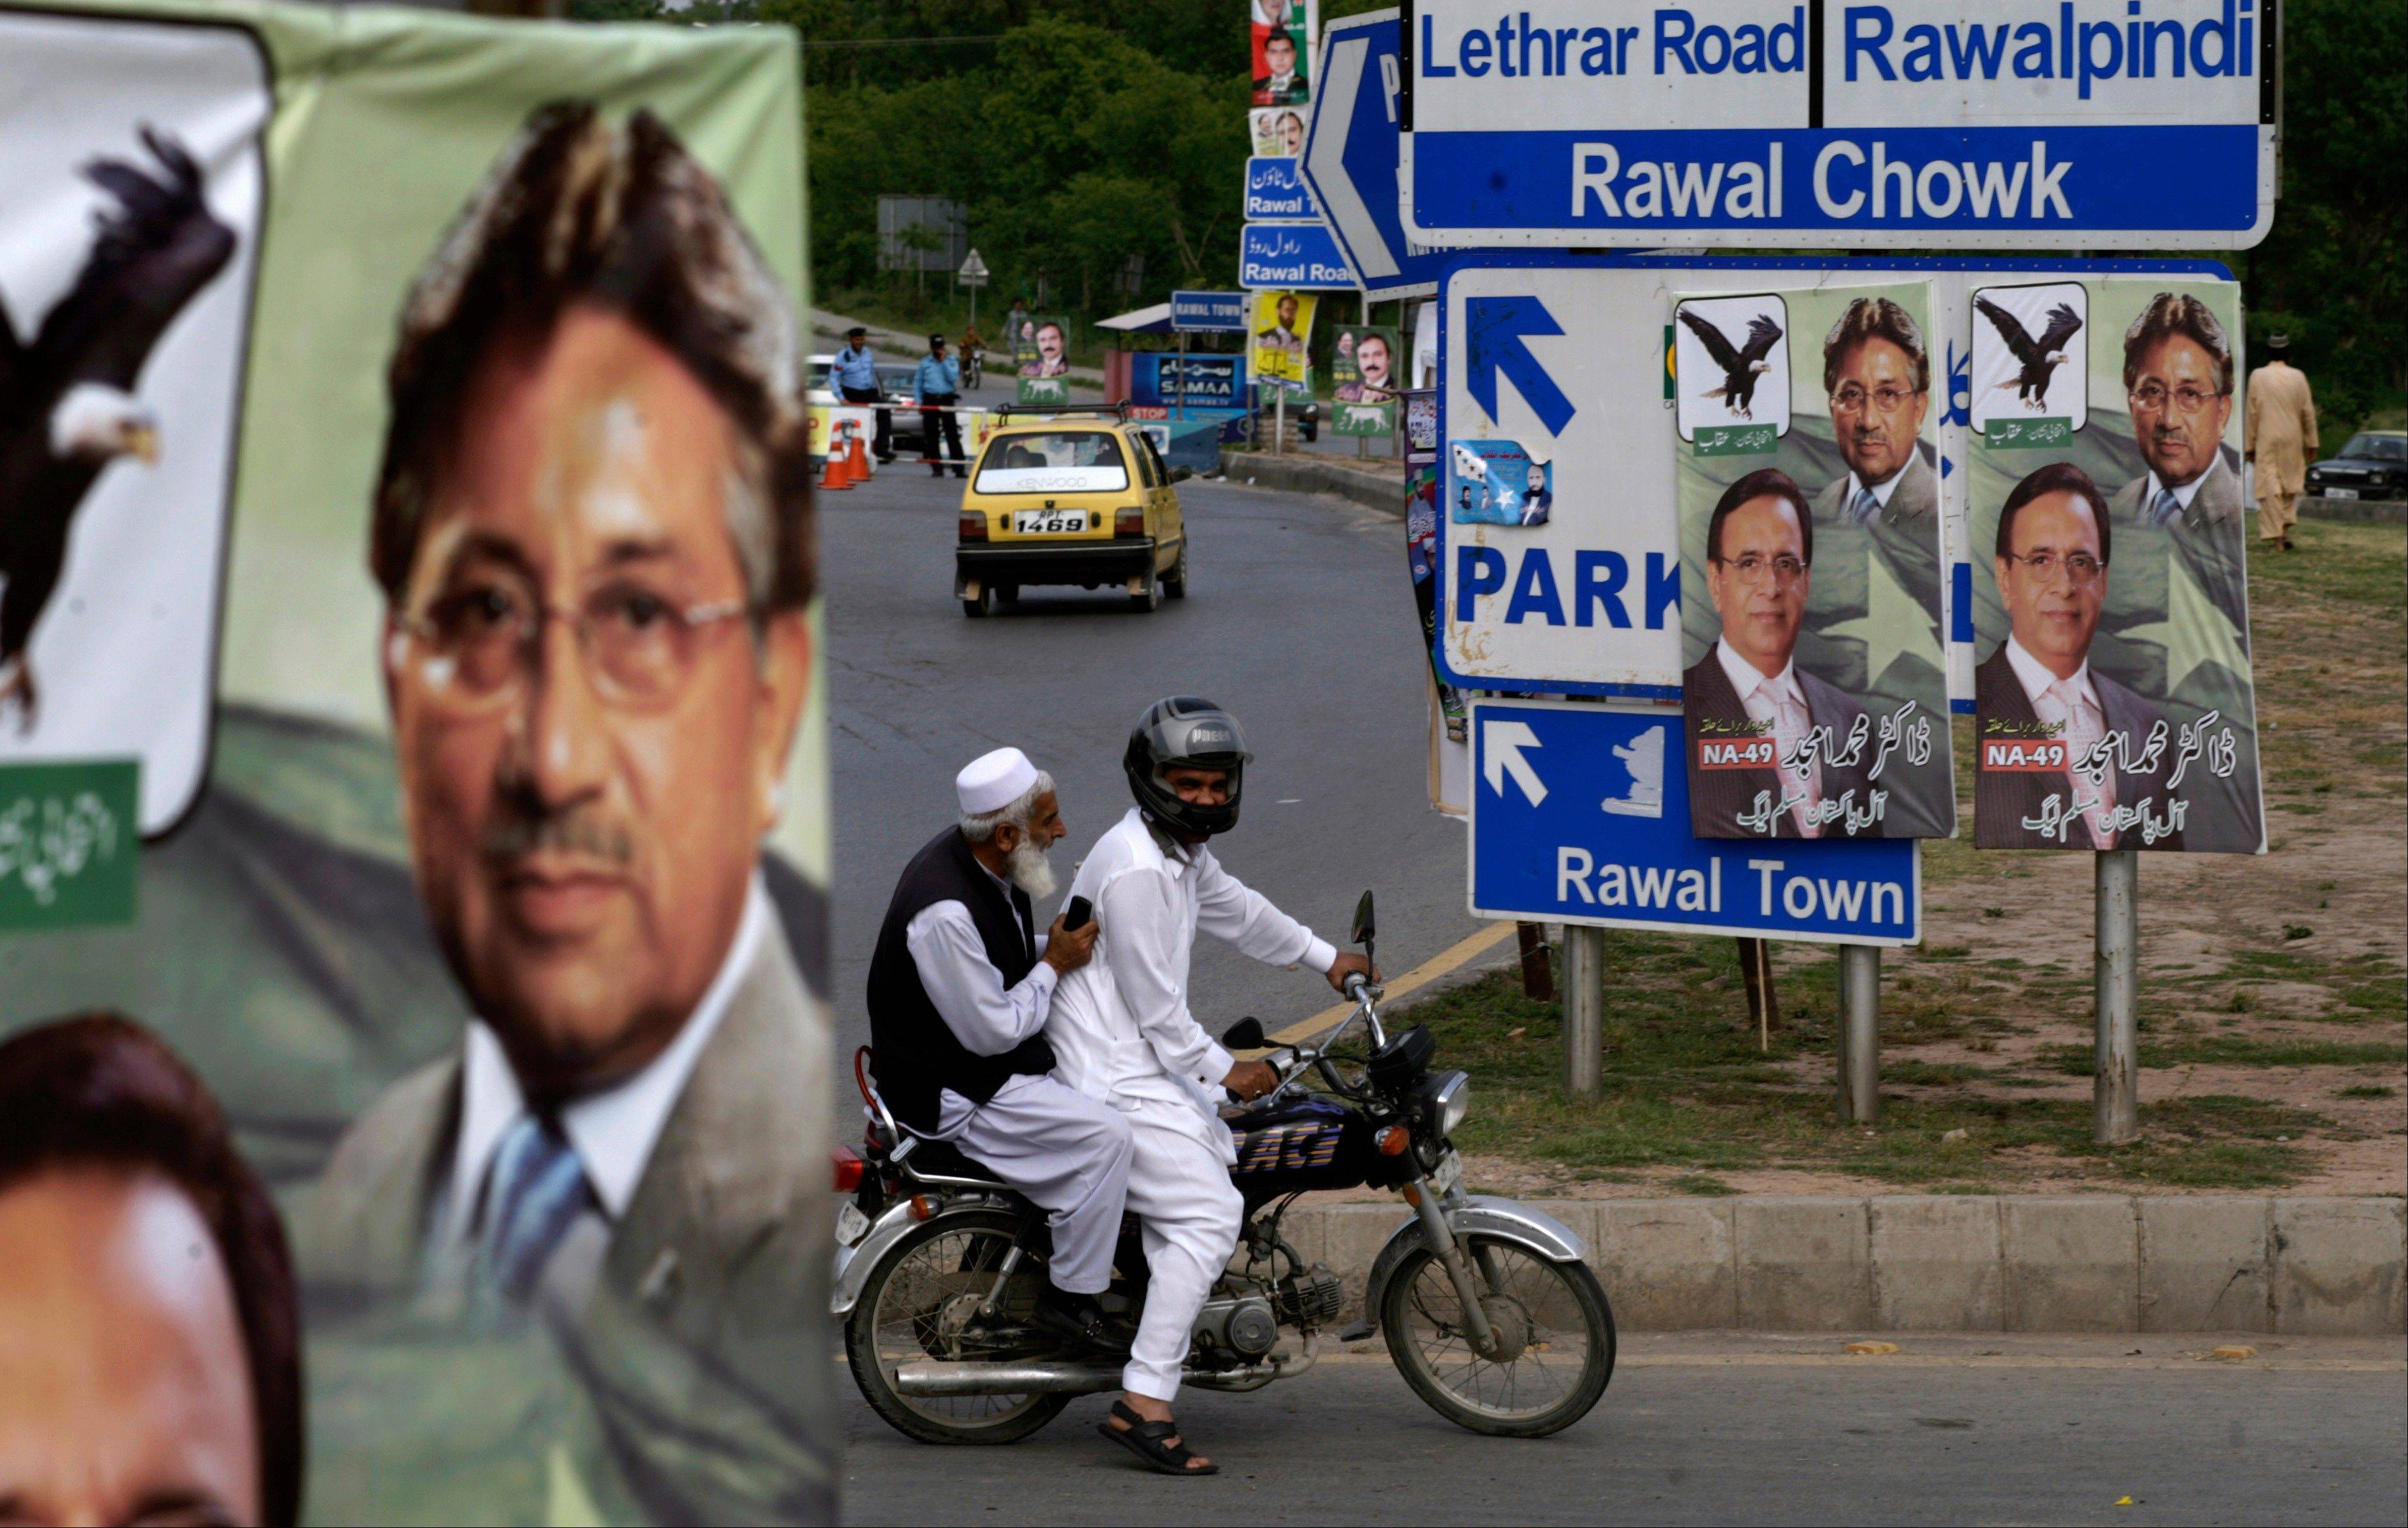 Pakistani men ride a motorcycle past posters showing former President and military ruler Pervez Musharraf, in Islamabad, Pakistan, Friday, April 19, 2013. Police arrested Musharraf overnight at his home in the capital, where he had holed up following a dramatic escape from court to avoid being detained, officials said Friday.